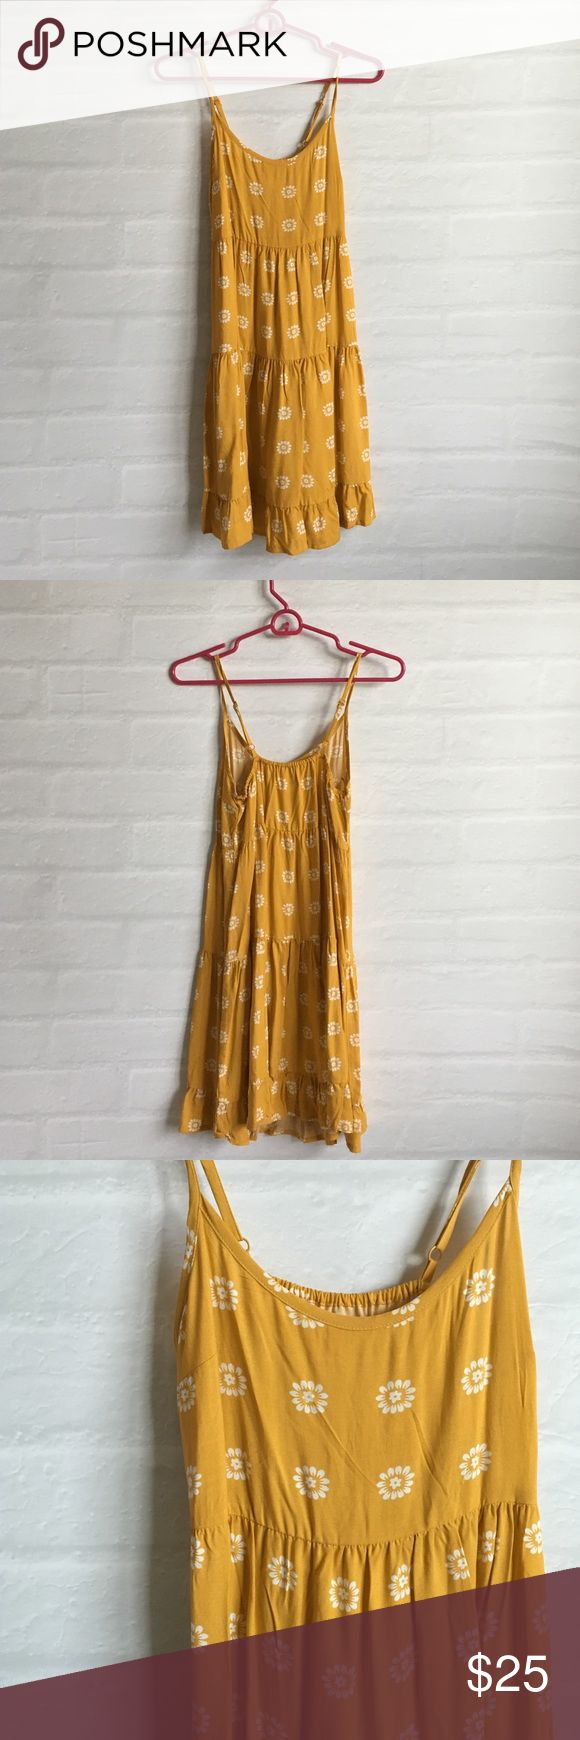 Sunflower Dress Cute mustard yellow sunflower dress. 3 tiers with ruffle hem. Adjustable spaghetti straps. Elastic in back. Brand new, never been worn. Super cute but yellow isn't my color. Mossimo Supply Co. Dresses Mini